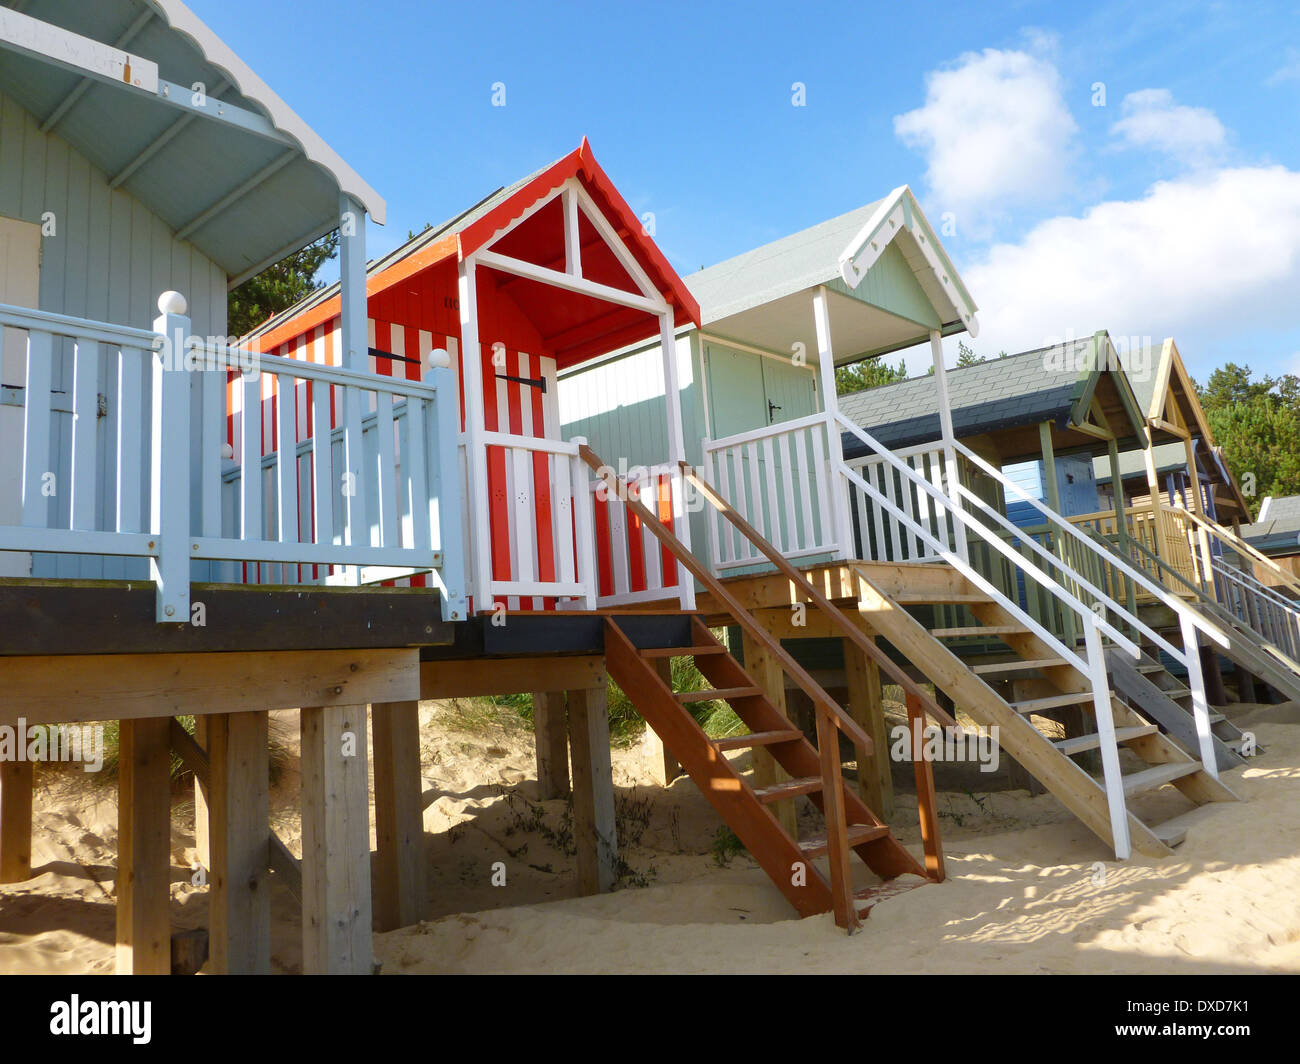 Colourful beach huts at Wells next the Sea, Norfolk, England. Stock Photo